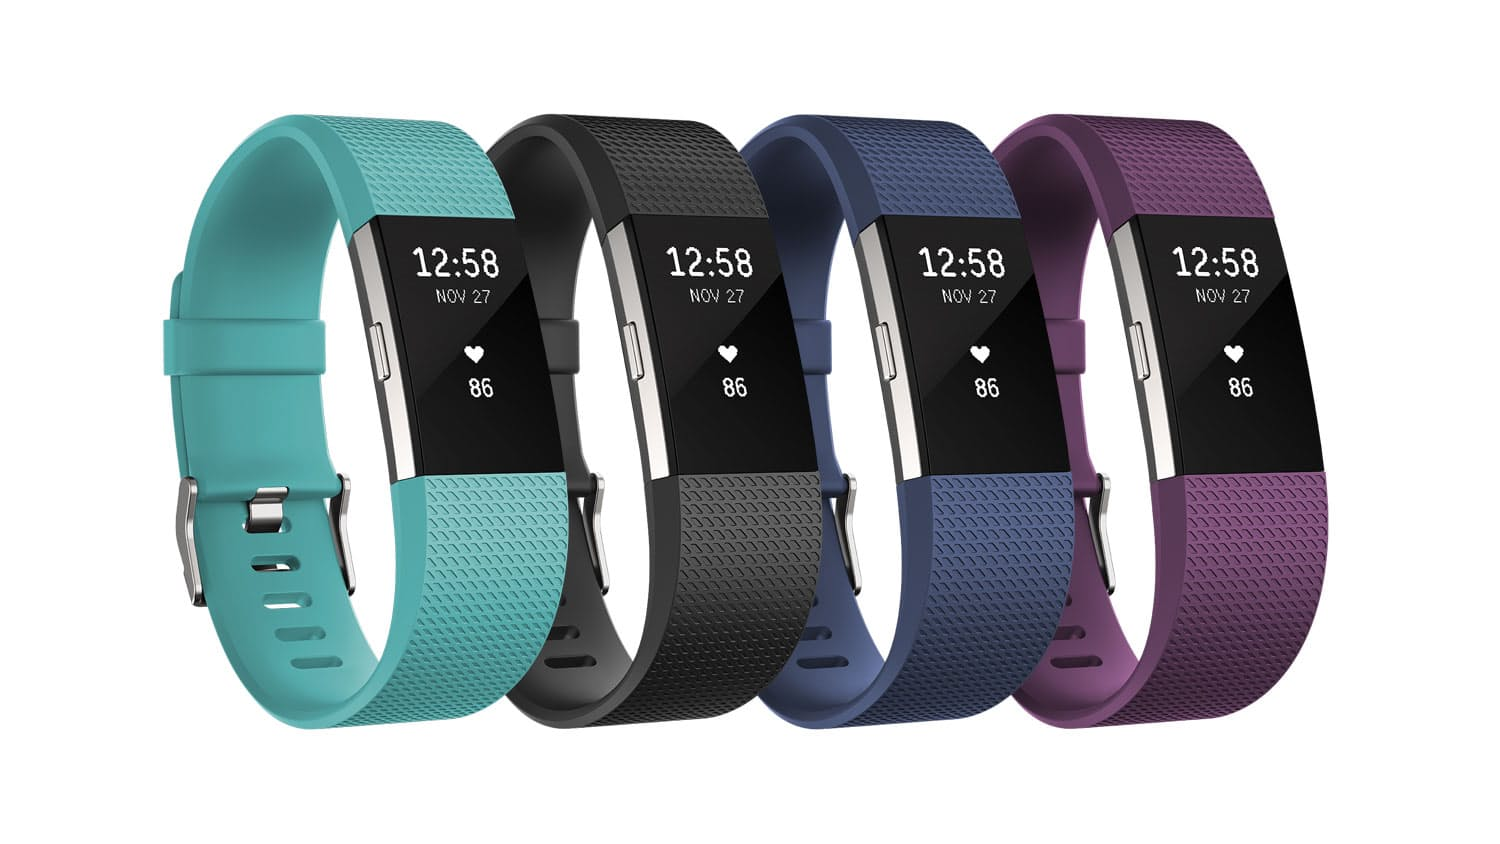 Wearables provider Fitbit in talks with the NHS - Pharmaphorum